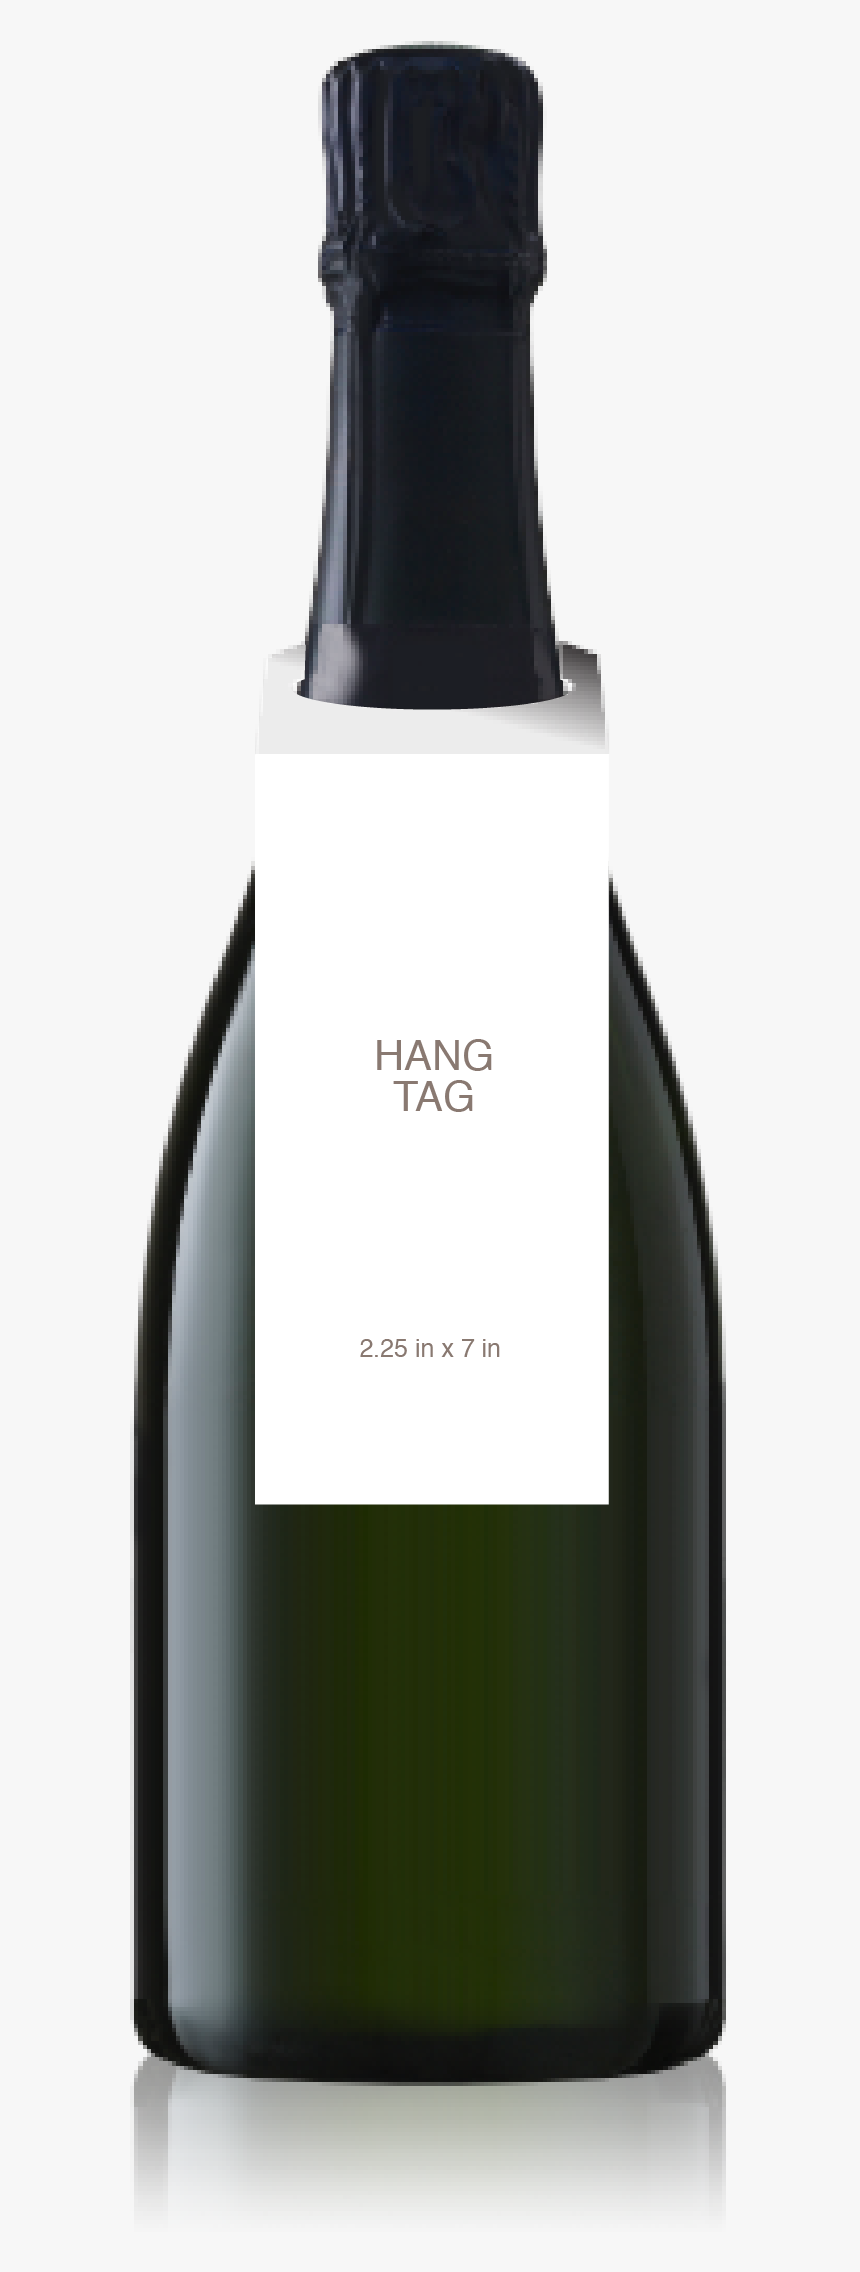 Champagne Bottle With A Blank Hangtag From Crushtag, HD Png Download, Free Download